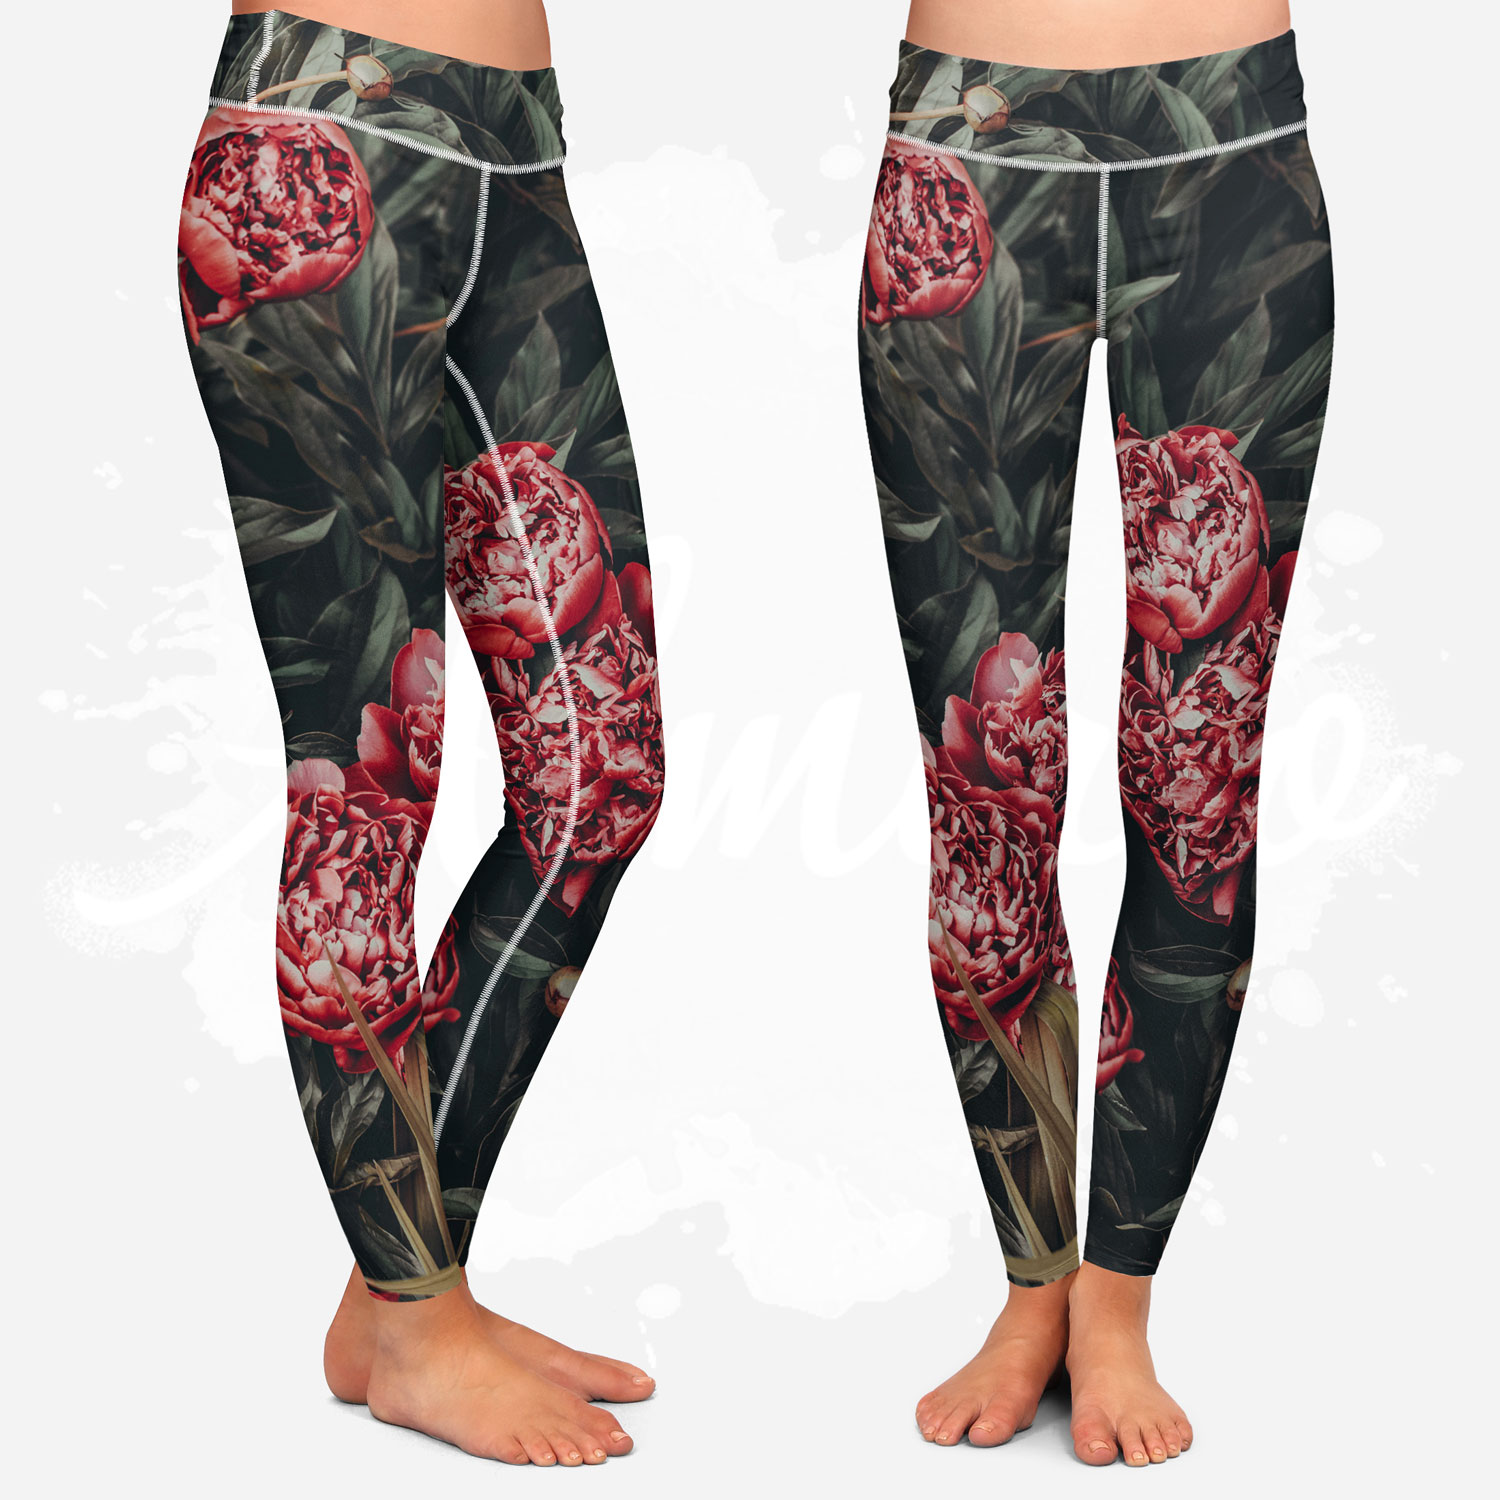 Leggings for women, Almirio, Dark Rose, yoga style